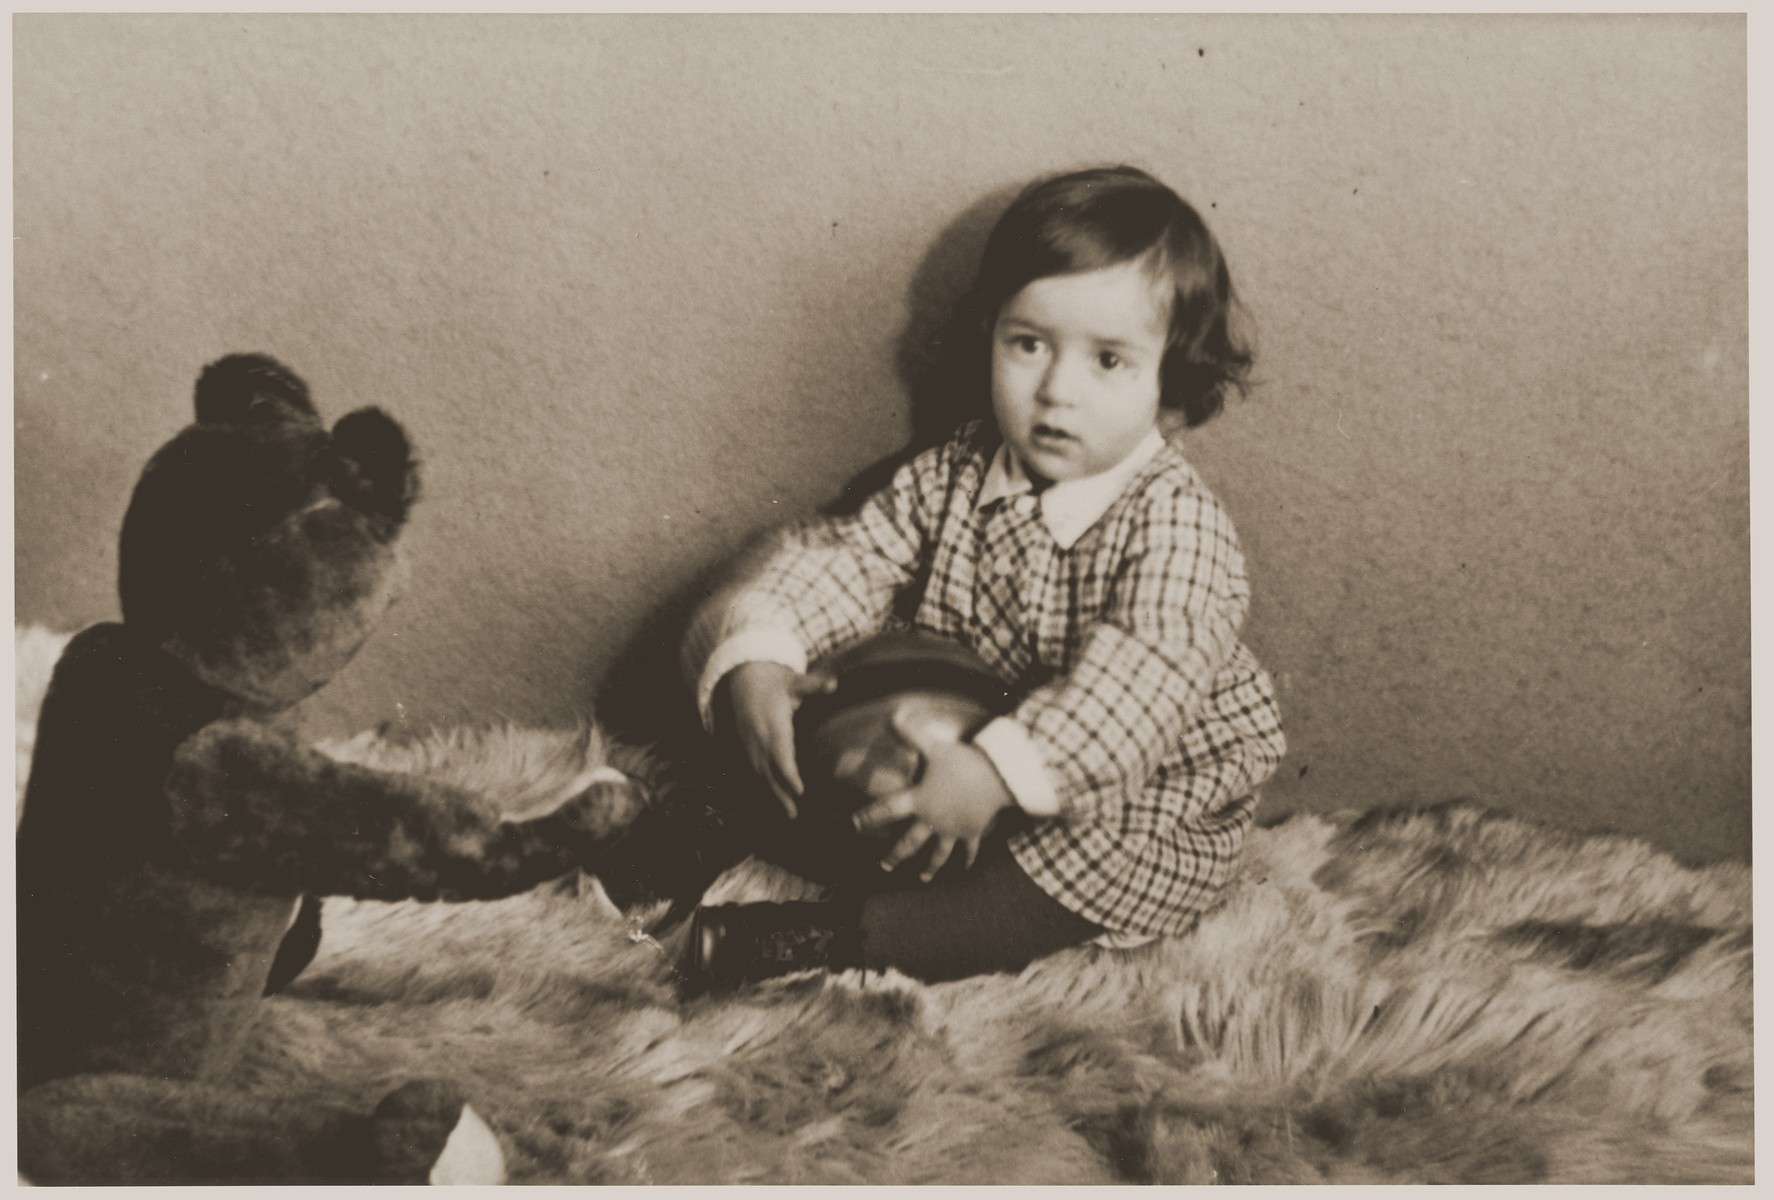 Portrait of one year old Suse Grunbaum with her teddy bear.